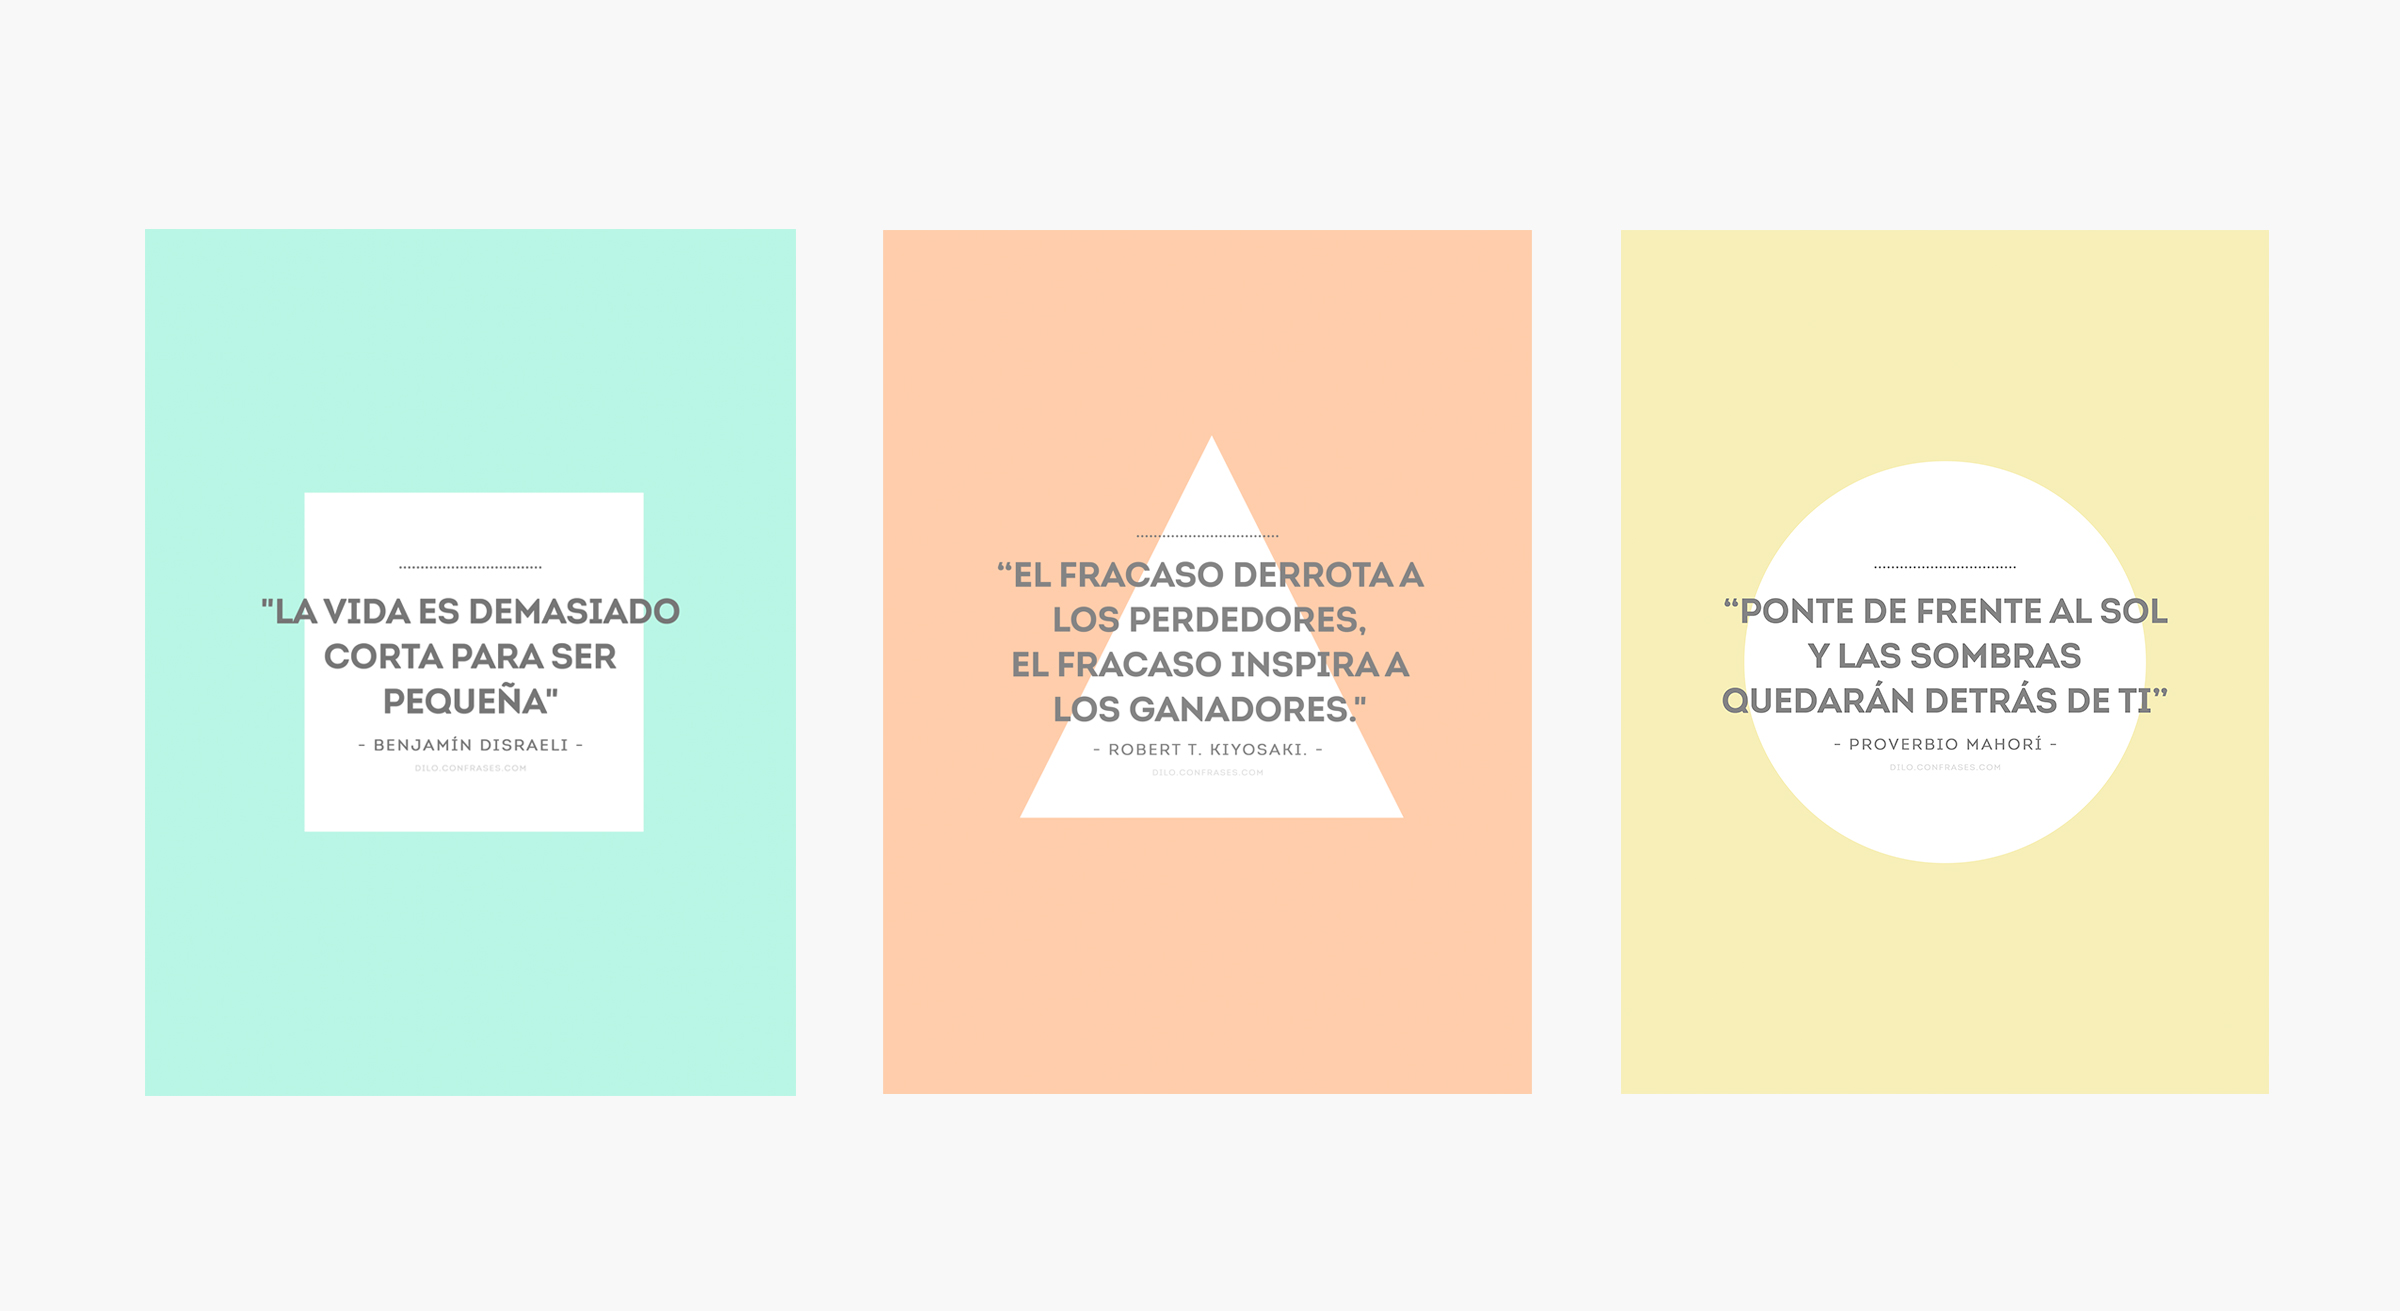 Branding Quotes Confrases Branding And User Interface  Lumen Bigott Lumen Bigott